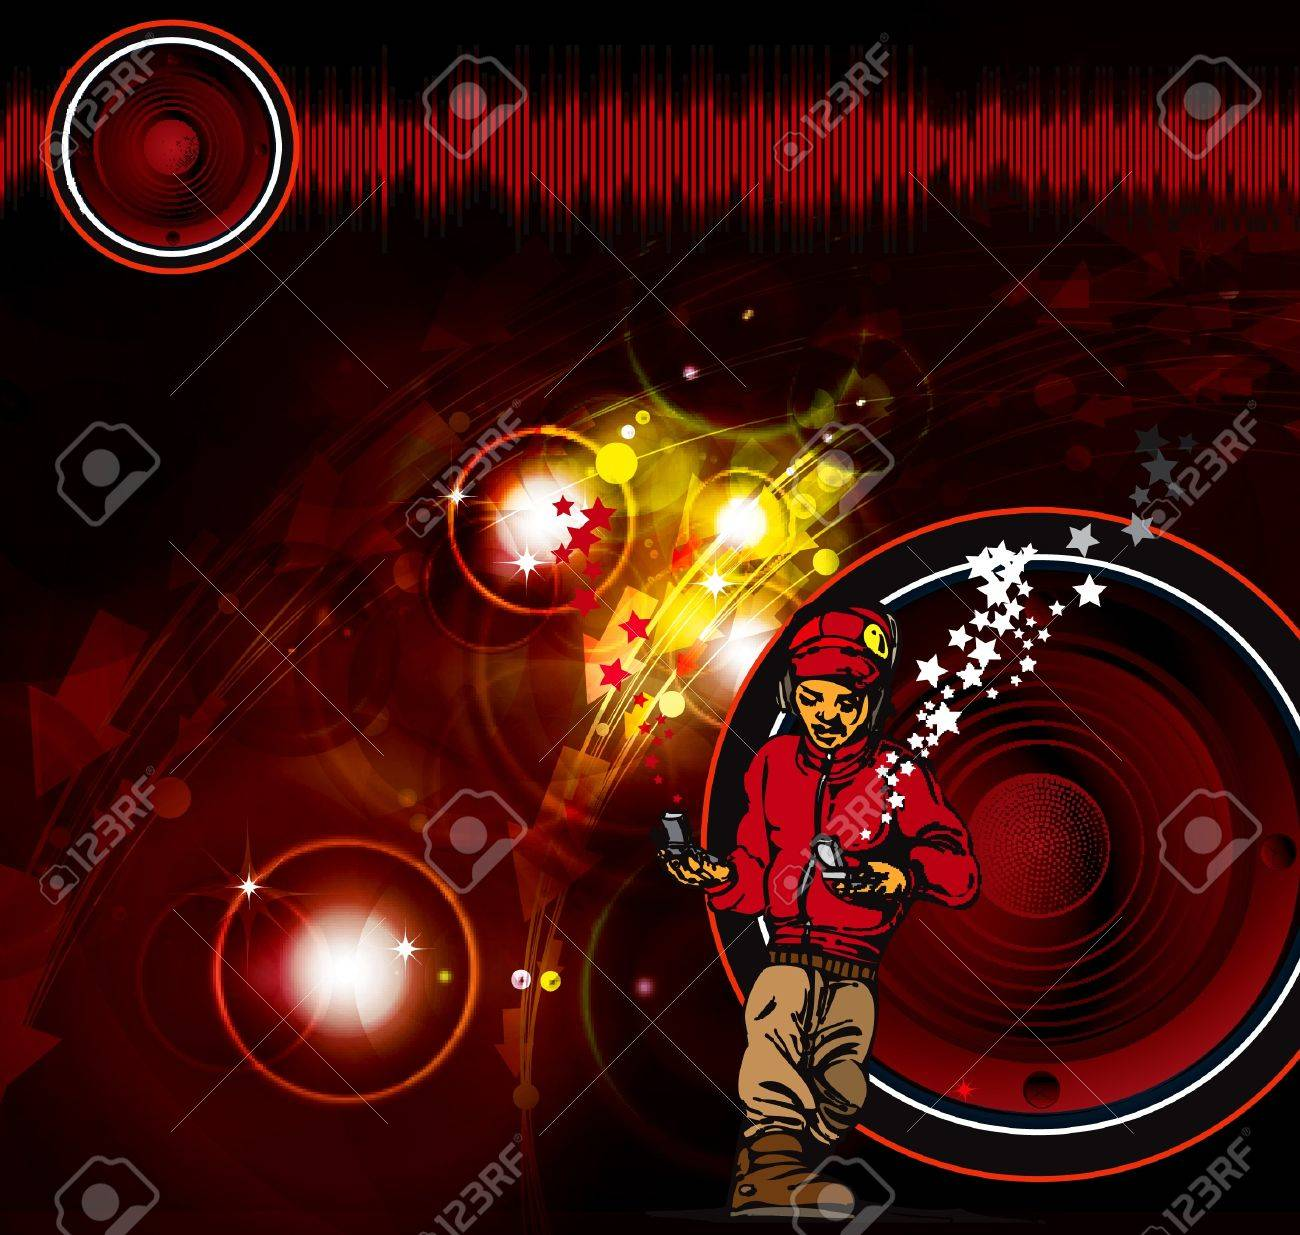 Music poster Stock Vector - 9868738